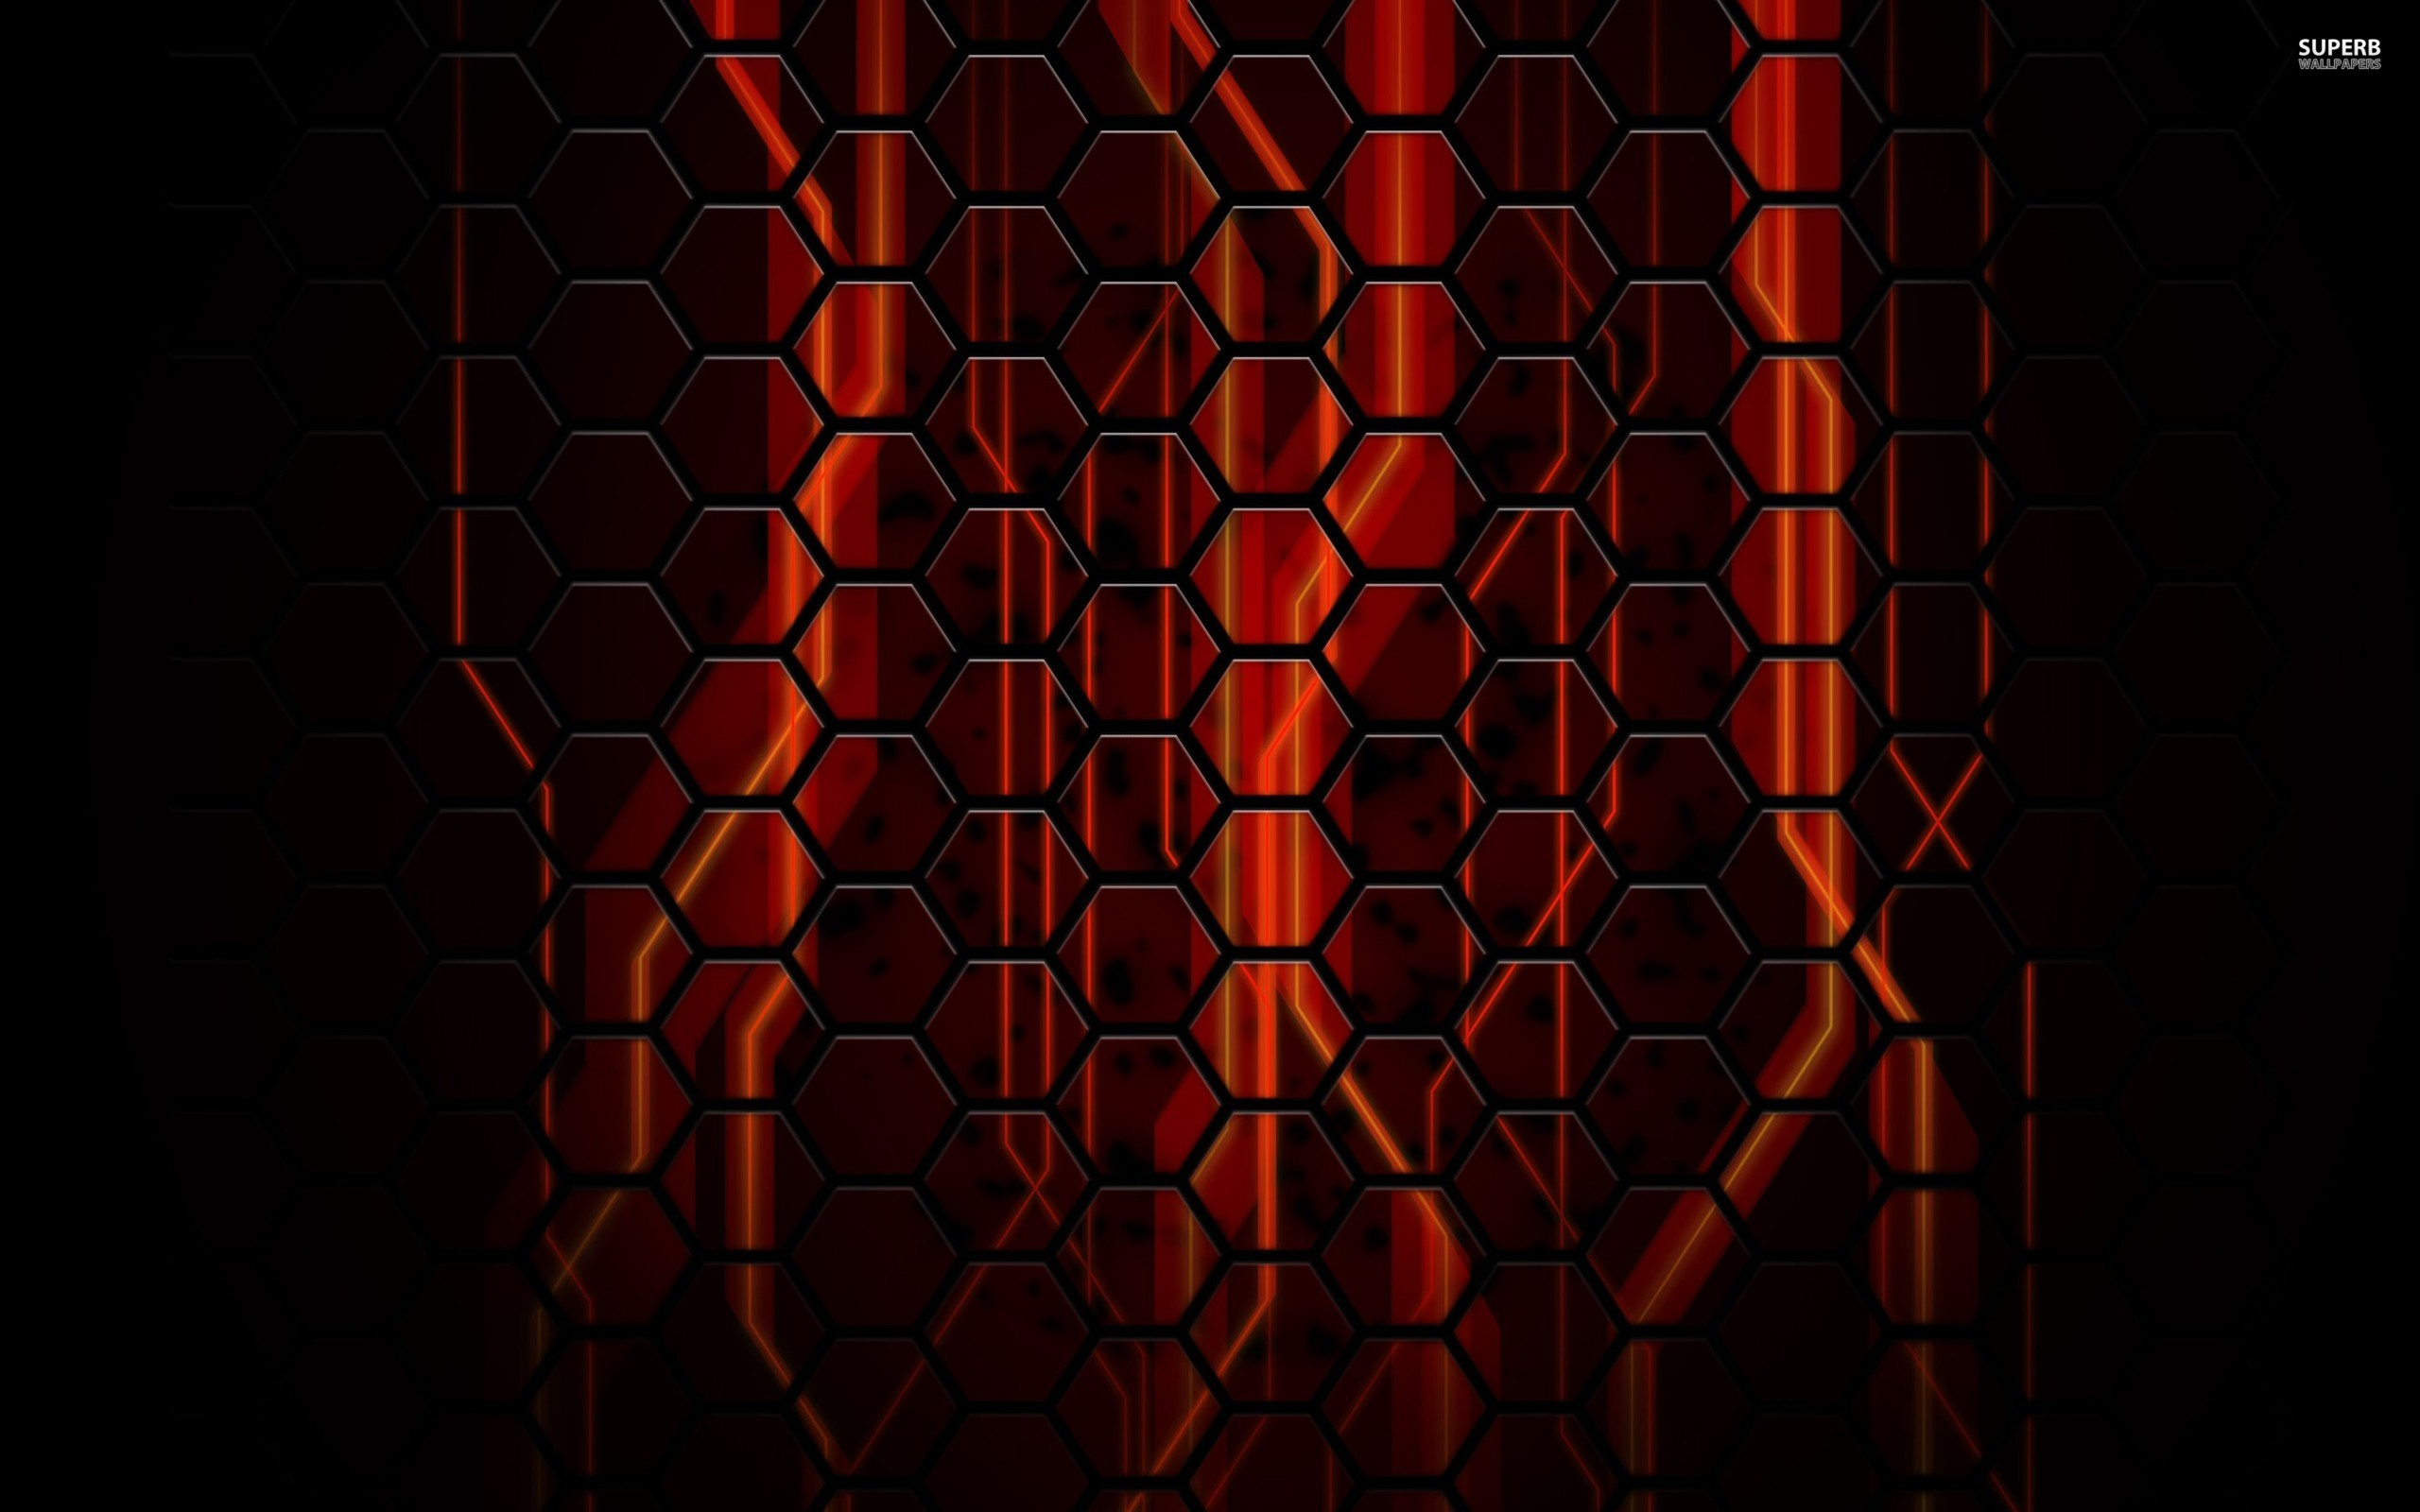 honeycomb background hd hexagon wallpapers backgrounds social desktop pattern android abstract tous fonds les iphone neon amazing mobile wallpapersafari dcran